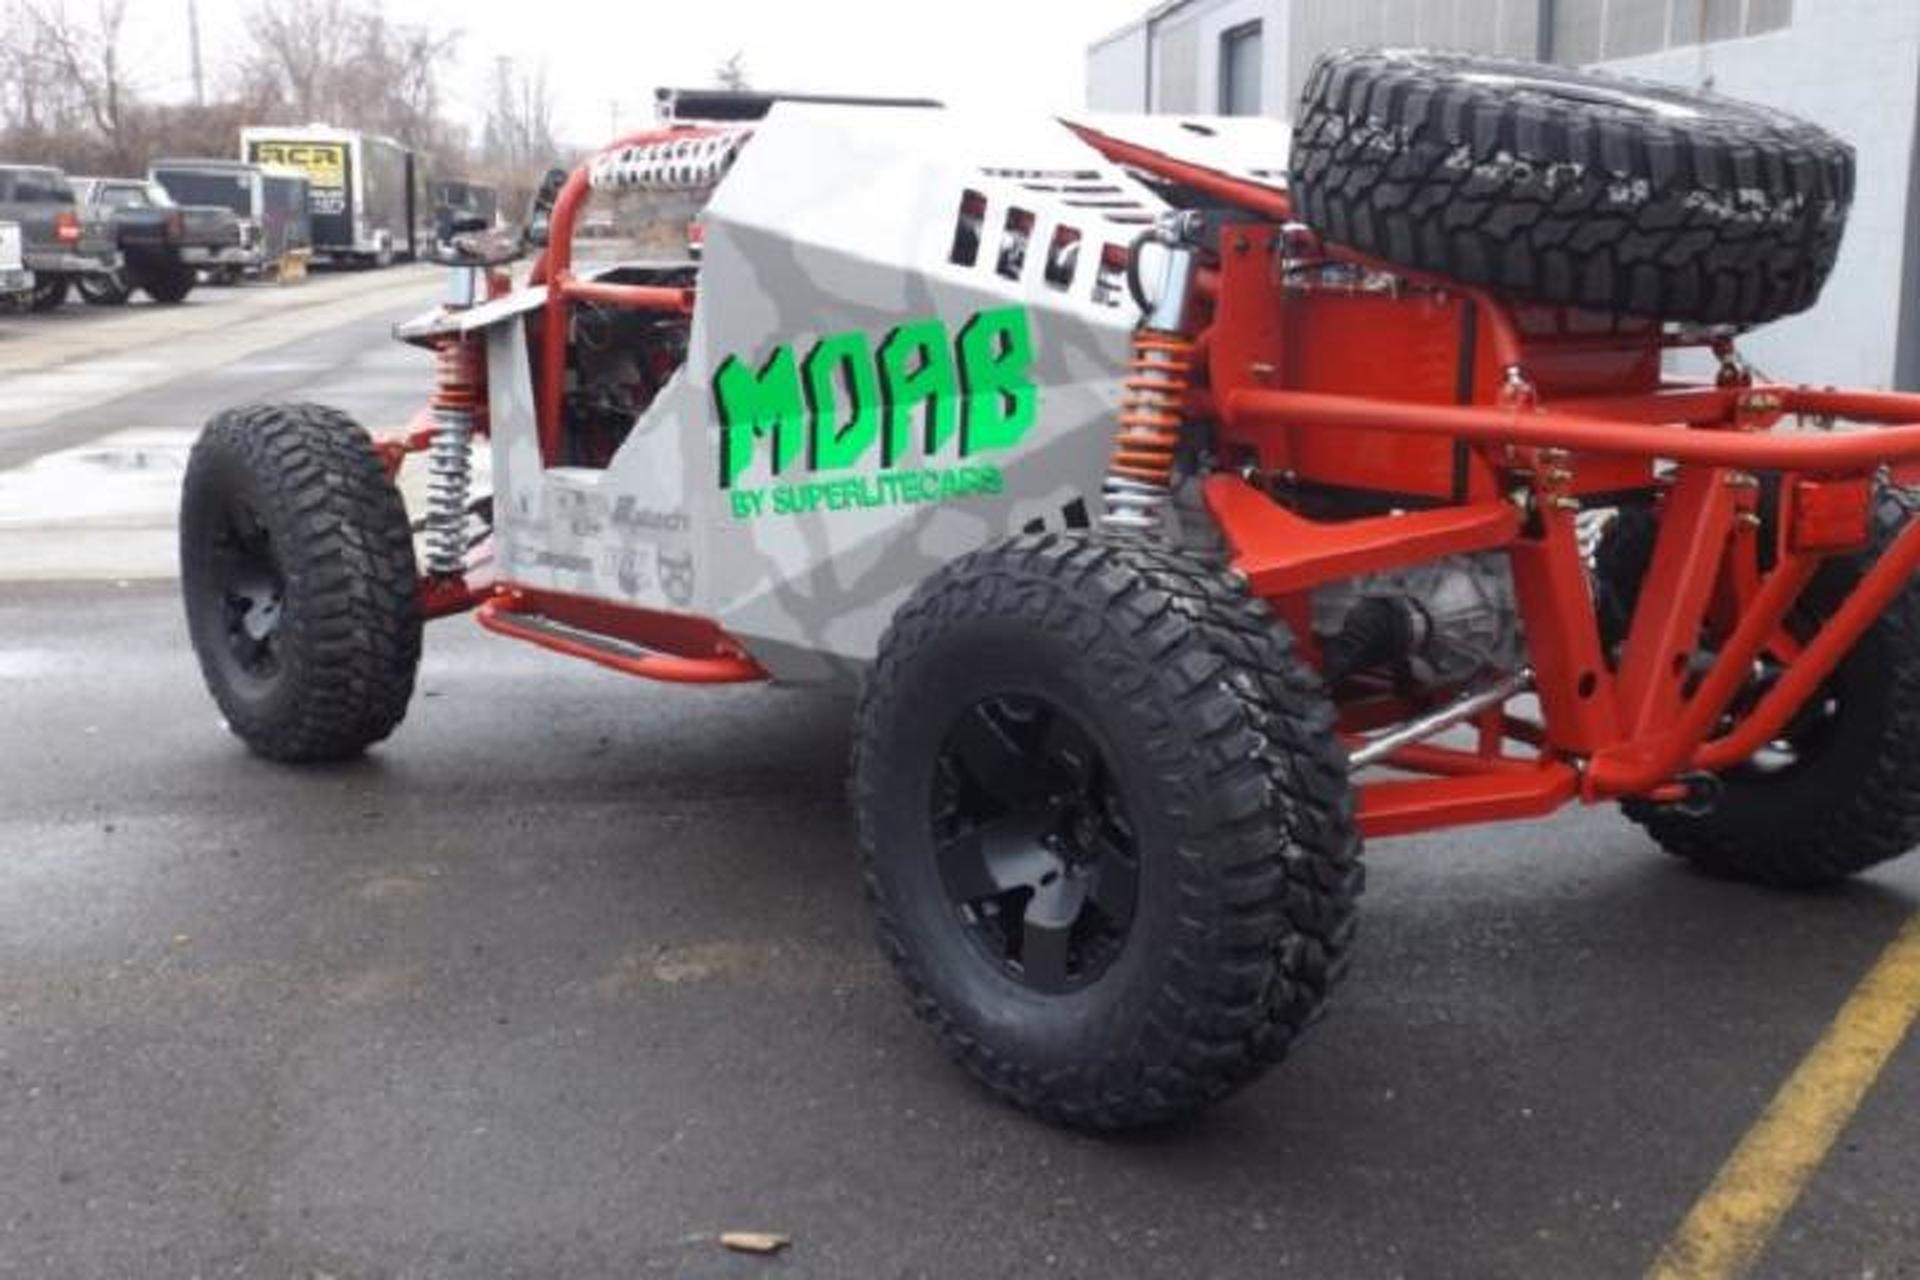 Superlite Moab: The Trophy Truck We've Been Waiting For